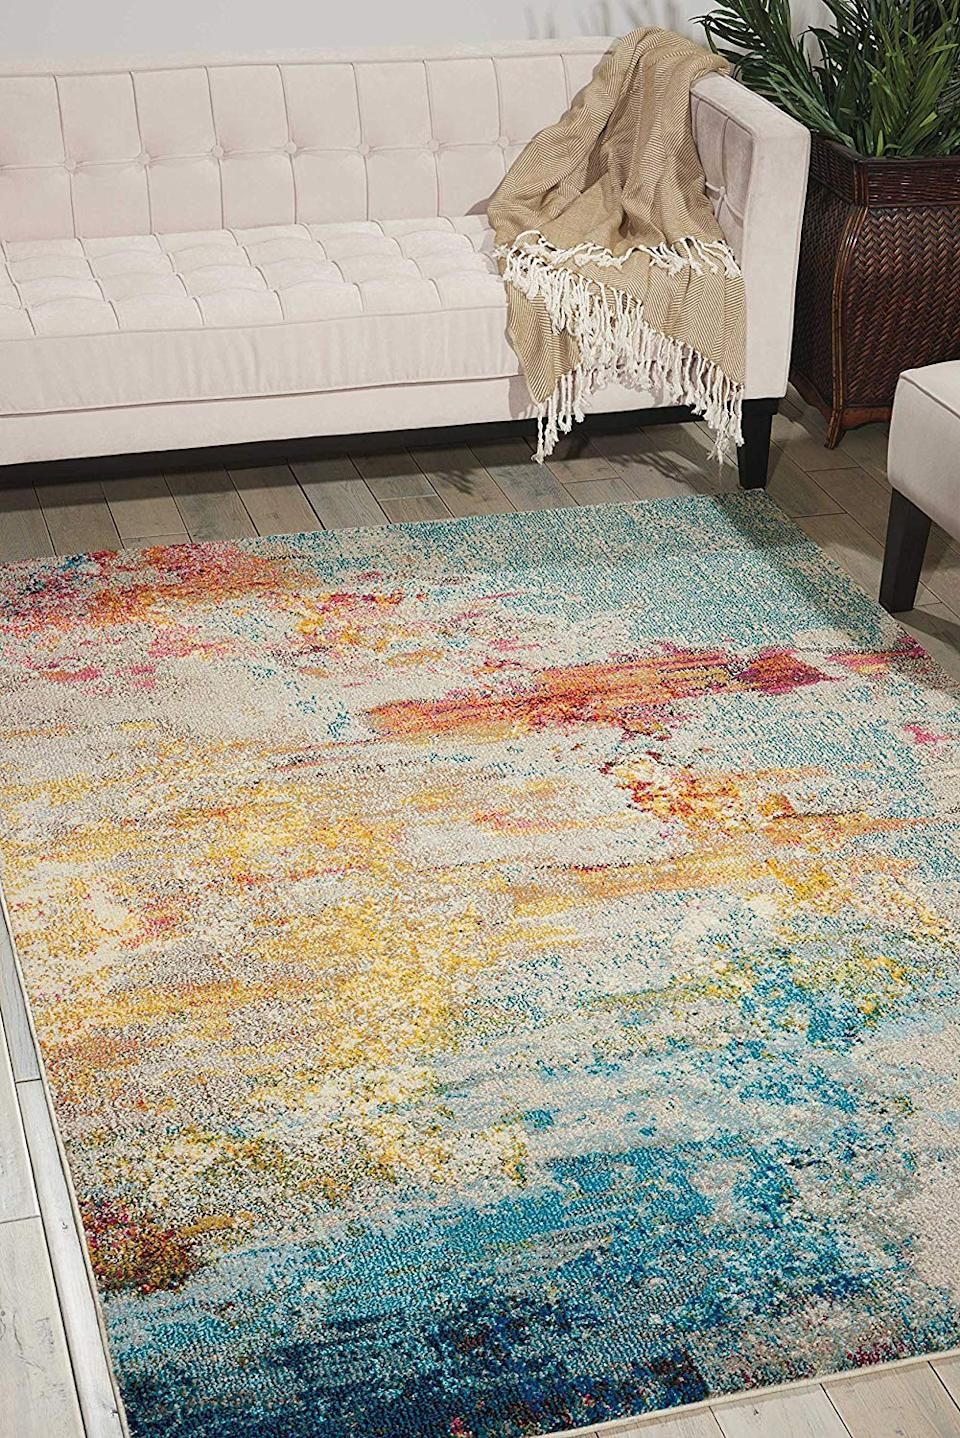 """<a href=""""https://www.amazon.com/dp/B01K6MHLQC?slotNum=1"""" rel=""""nofollow noopener"""" target=""""_blank"""" data-ylk=""""slk:Nourison Celestial Modern Abstract Rug"""" class=""""link rapid-noclick-resp""""><h3>Nourison Celestial Modern Abstract Rug<br></h3></a><br>We love a good shag rug as much as the next gal, but for a decor choice that'll set your aesthetic apart from all your friends, consider this celestial area rug inspired by the coral reef.<br><br><strong>Nourison</strong> Modern Abstract Area Rug, $, available at <a href=""""https://www.amazon.com/Nourison-Celestial-Modern-Abstract-Multicolor/dp/B01K6MHLQC/"""" rel=""""nofollow noopener"""" target=""""_blank"""" data-ylk=""""slk:Amazon"""" class=""""link rapid-noclick-resp"""">Amazon</a>"""